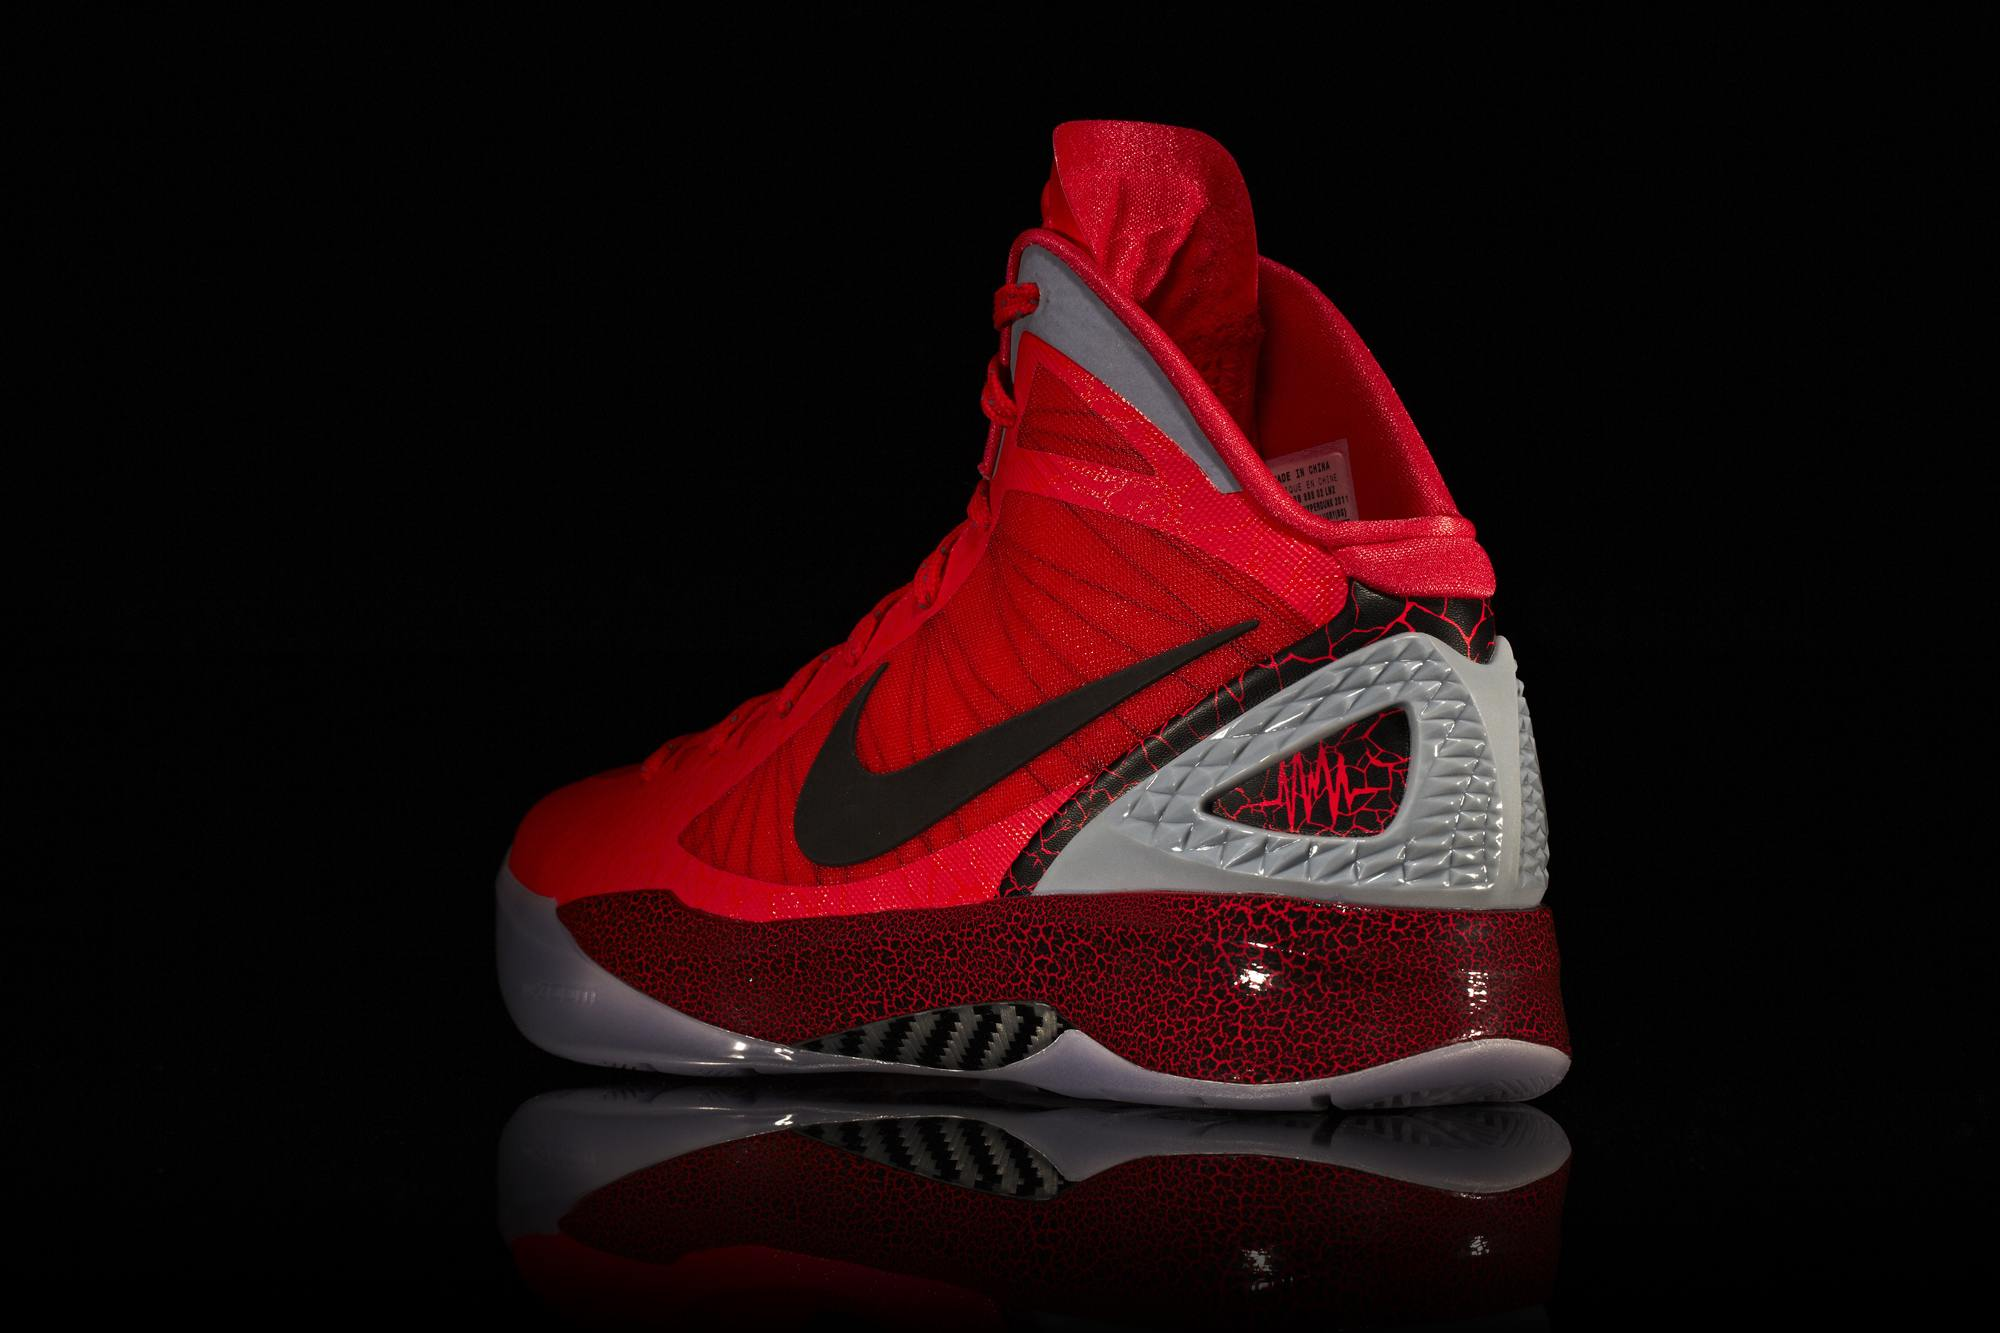 separation shoes 7809e cc8db ... PE - New 2011-02-20T152535+0000. TAGS Blake Griffin · Nike .